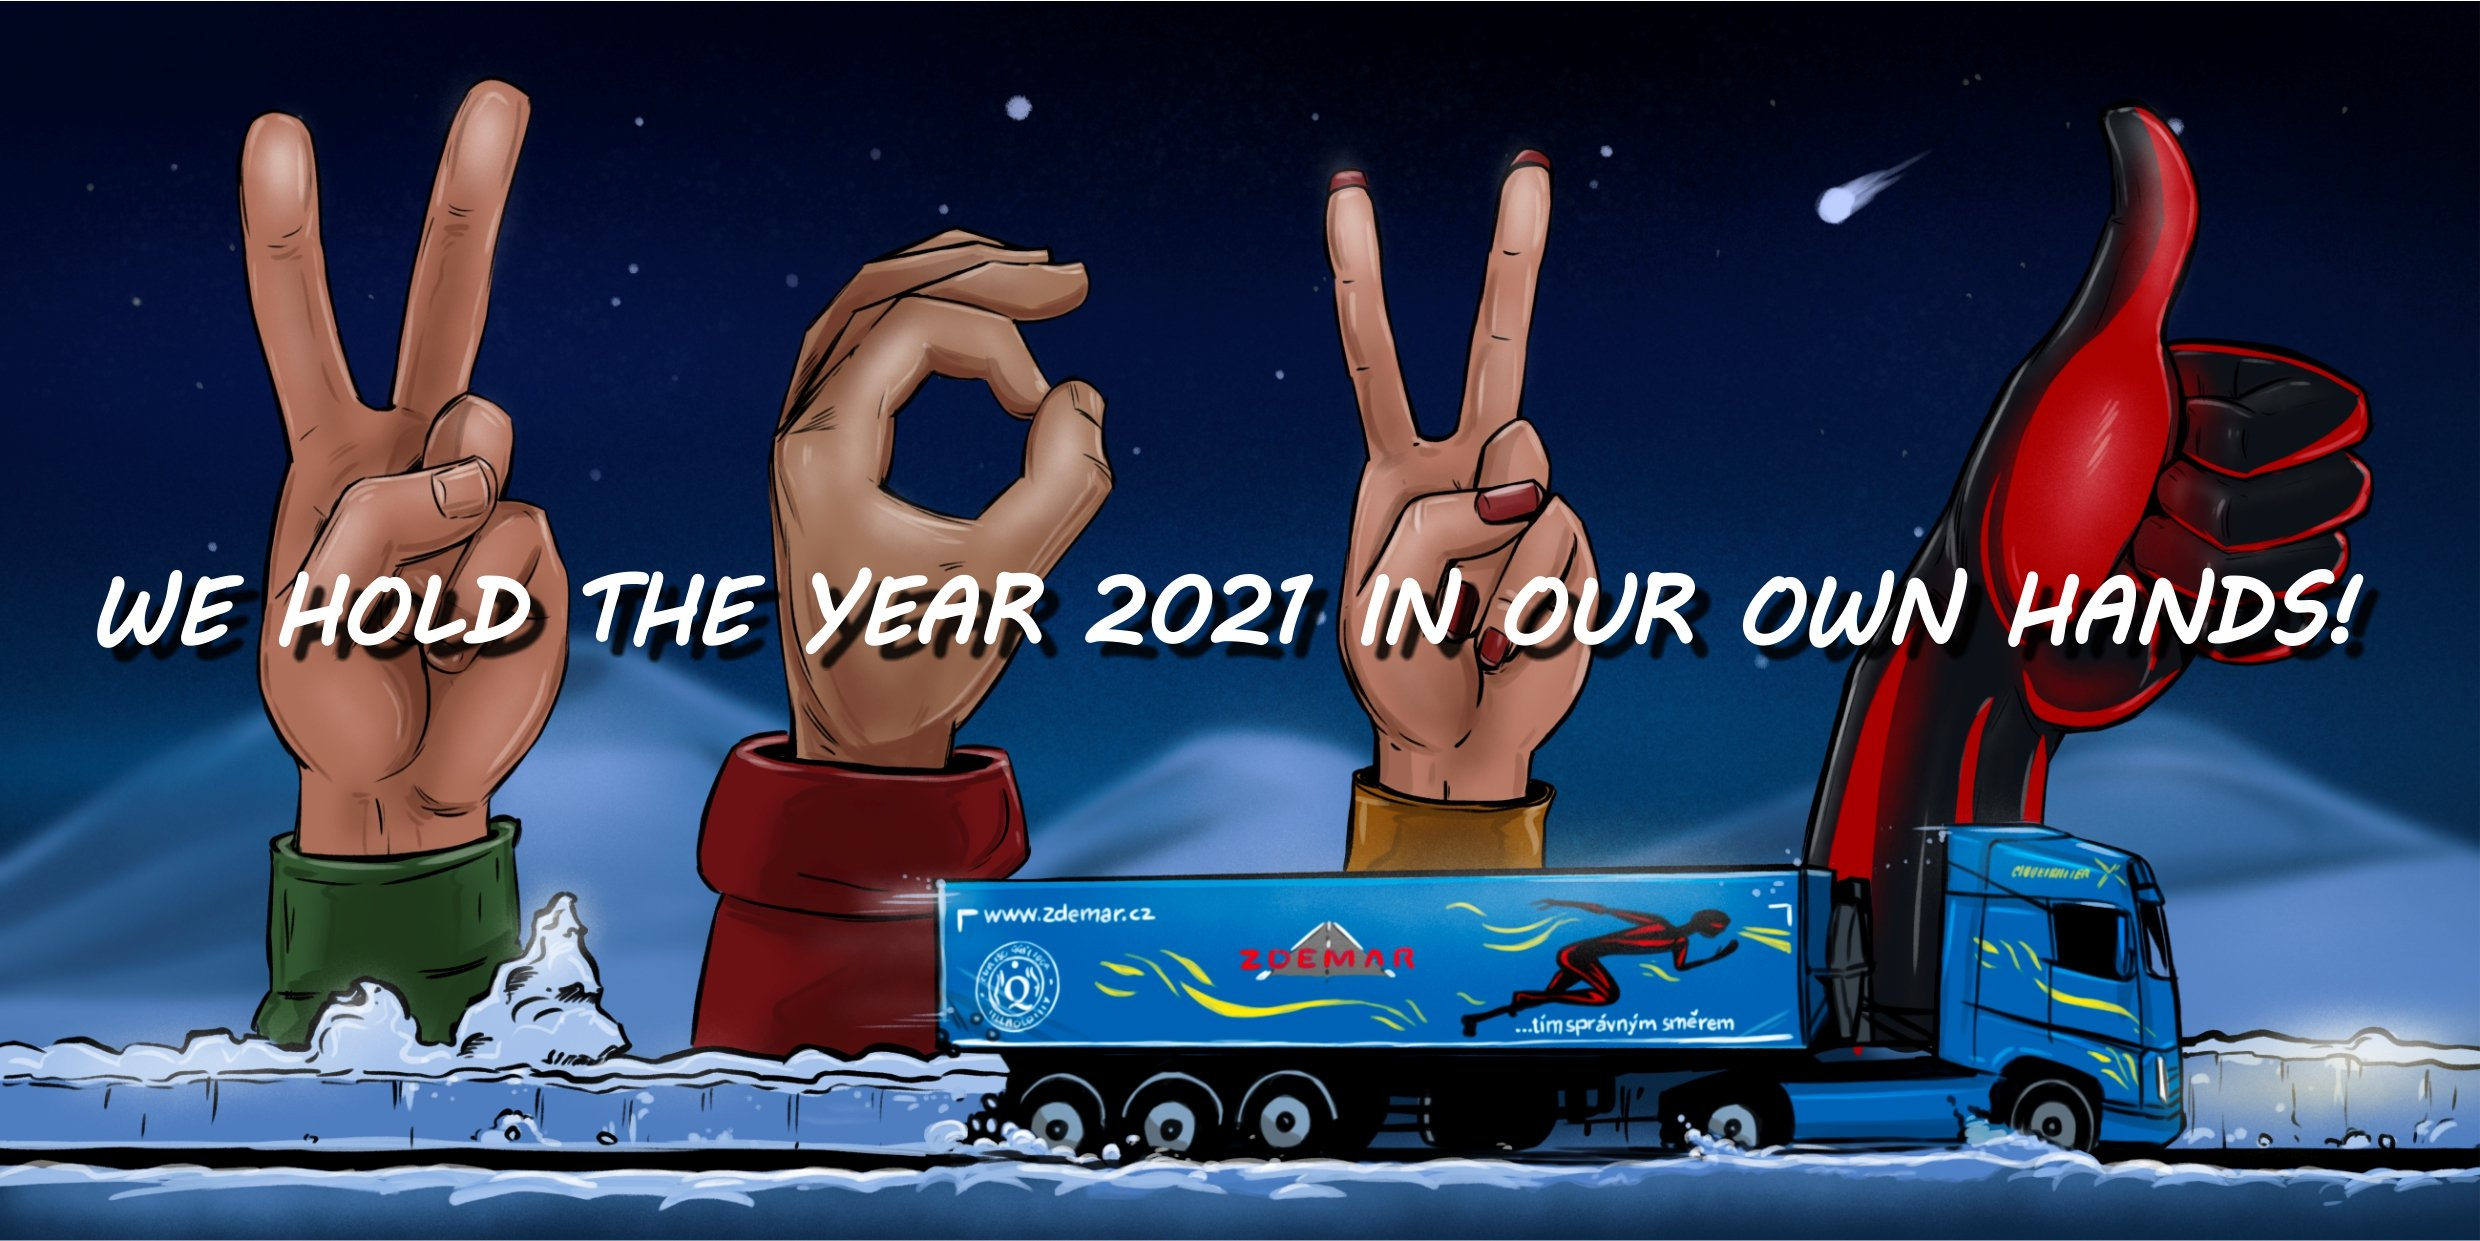 WE HOLD THE YEAR 2021 IN OUR OWN HANDS!